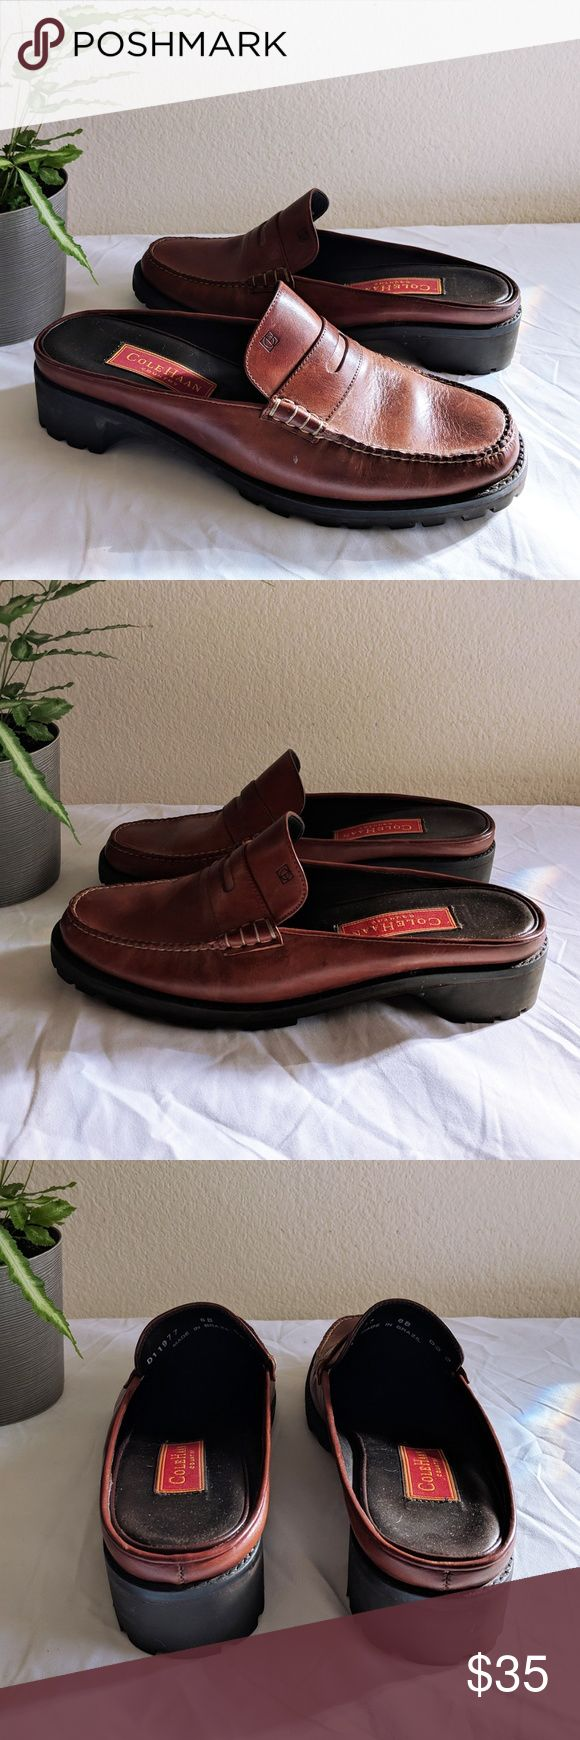 Vintage Cole Haan Brown Leather Loafers Slides 8 Beautiful and comfy Cole Haan Country loafer slide mules. In excellent condition; leather is broken in but soles are practically brand new. Fits a size 8. Cole Haan Shoes Mules & Clogs